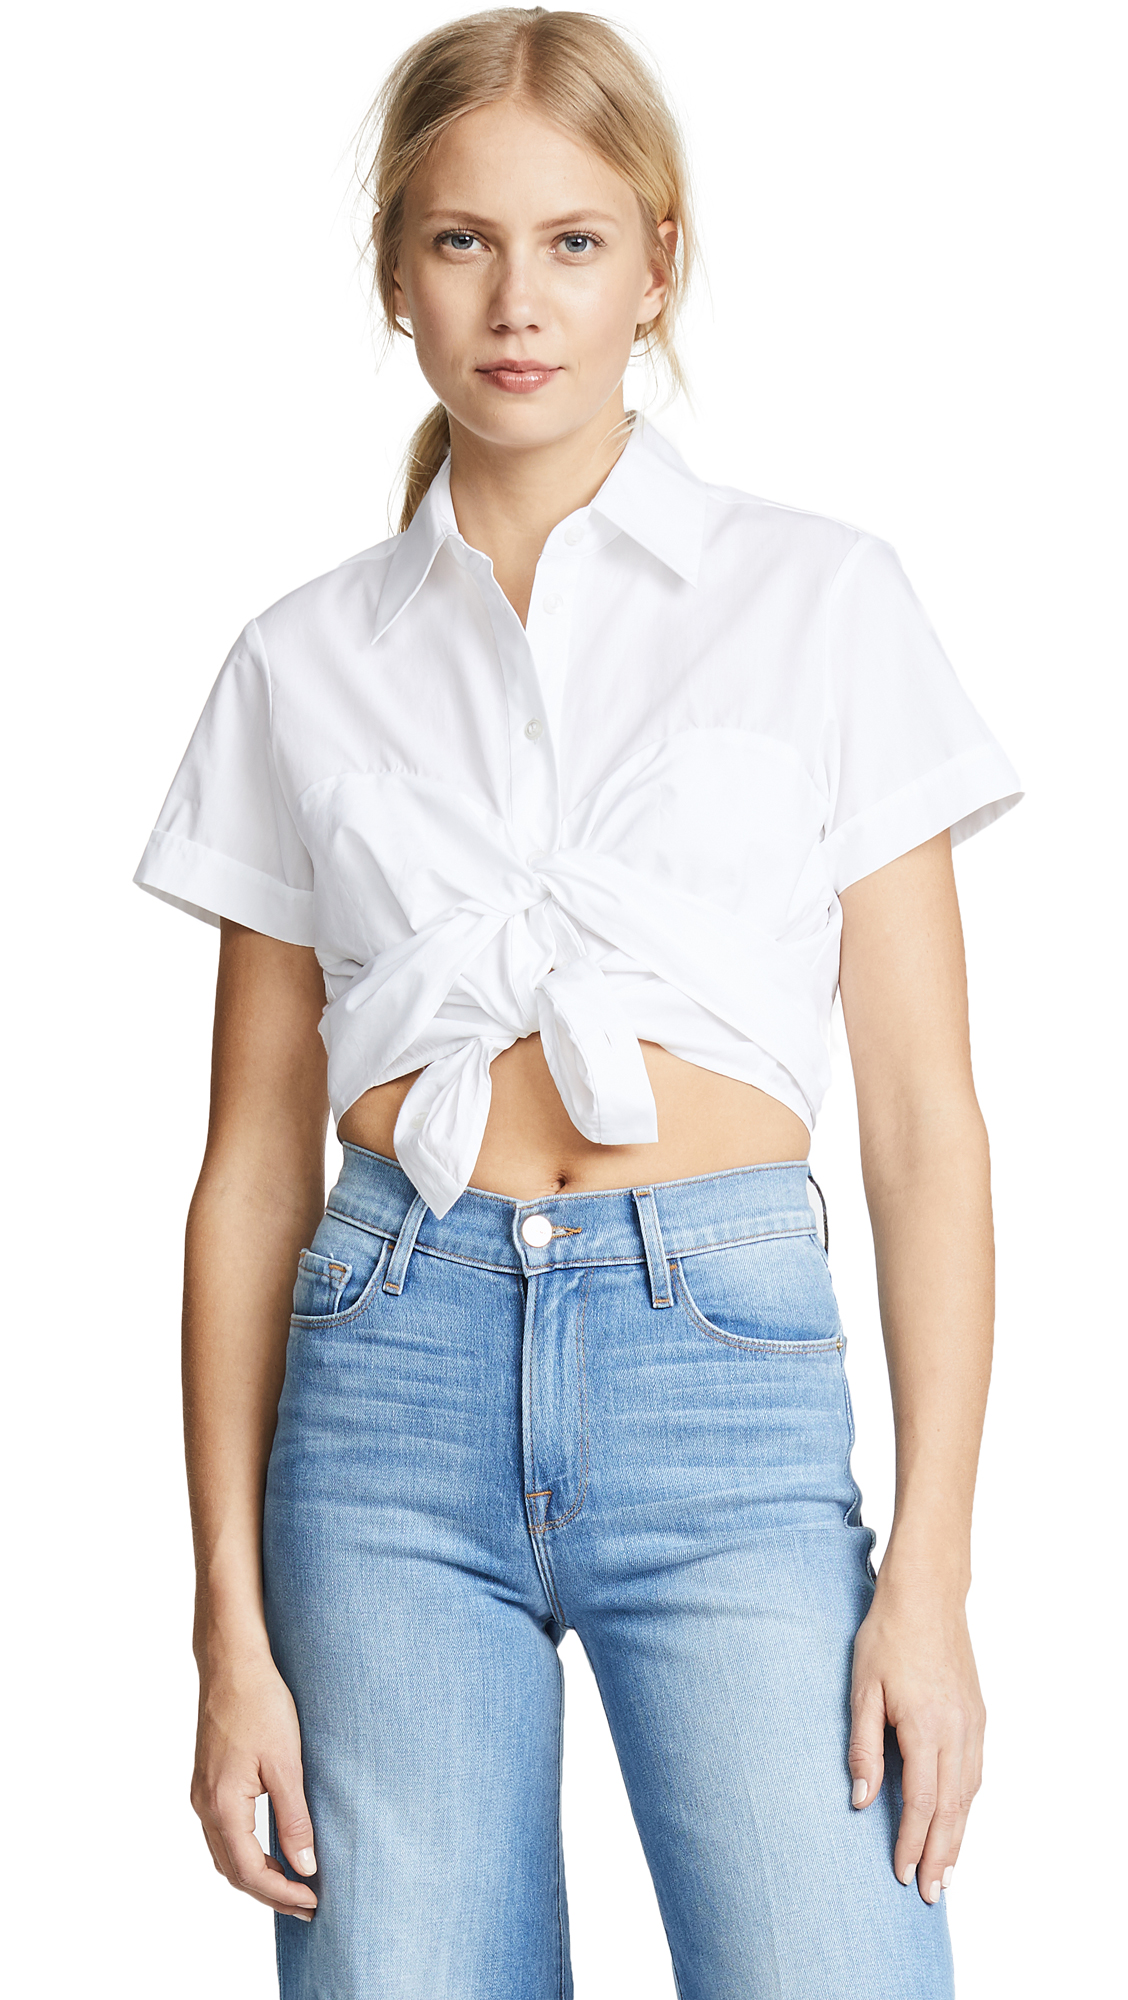 CROPPED BUSTIER SHIRT